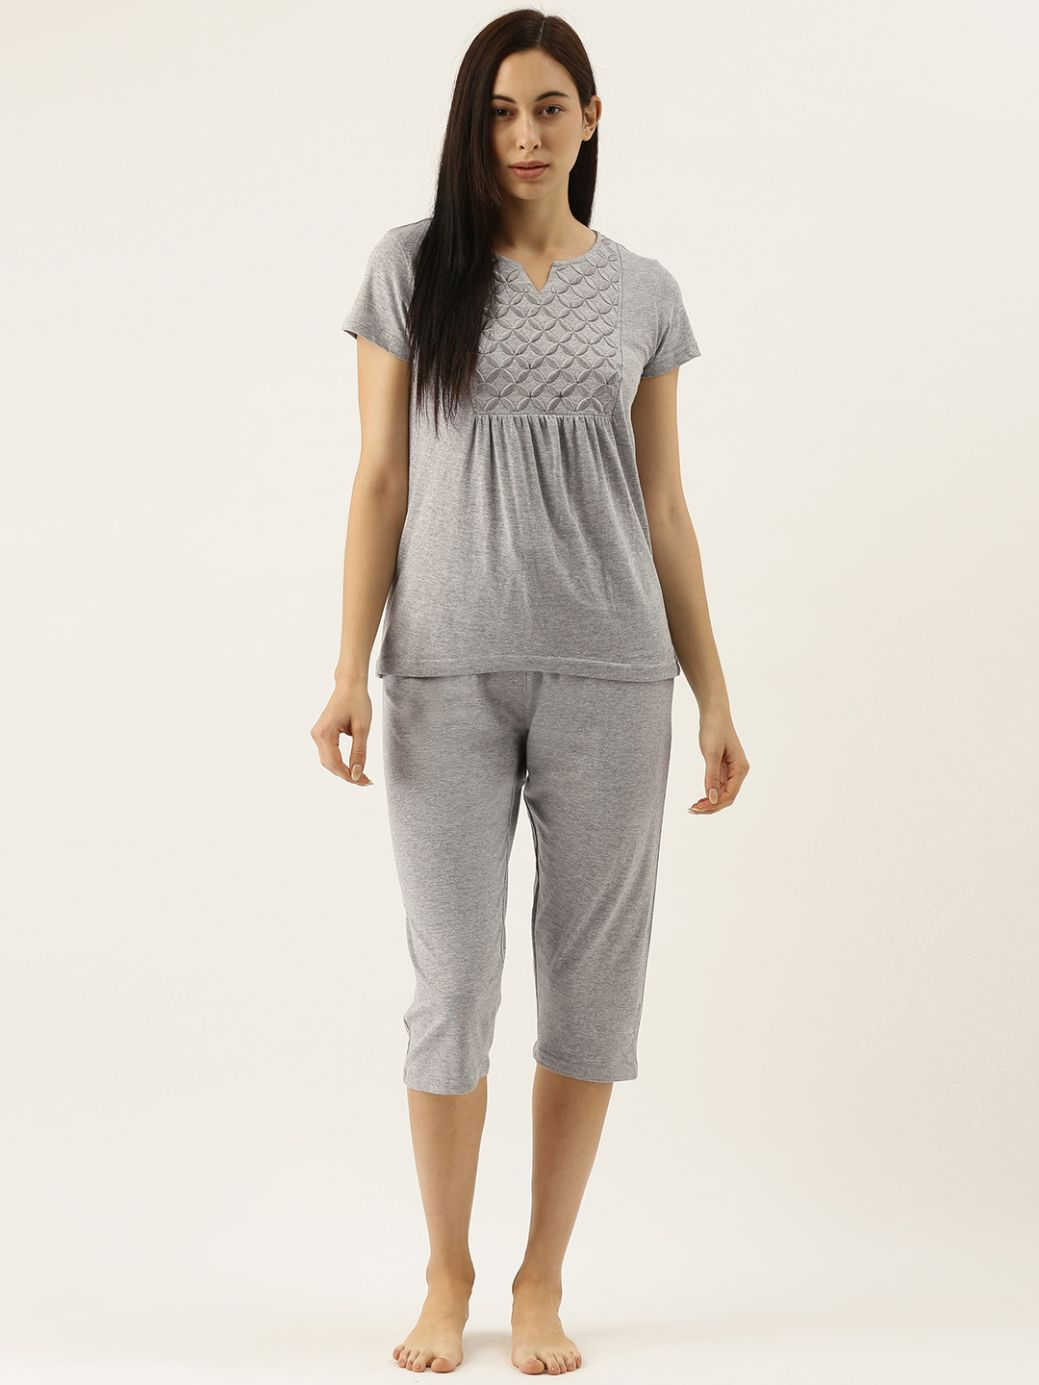 Grey Capri Set with Geometric Embroidery